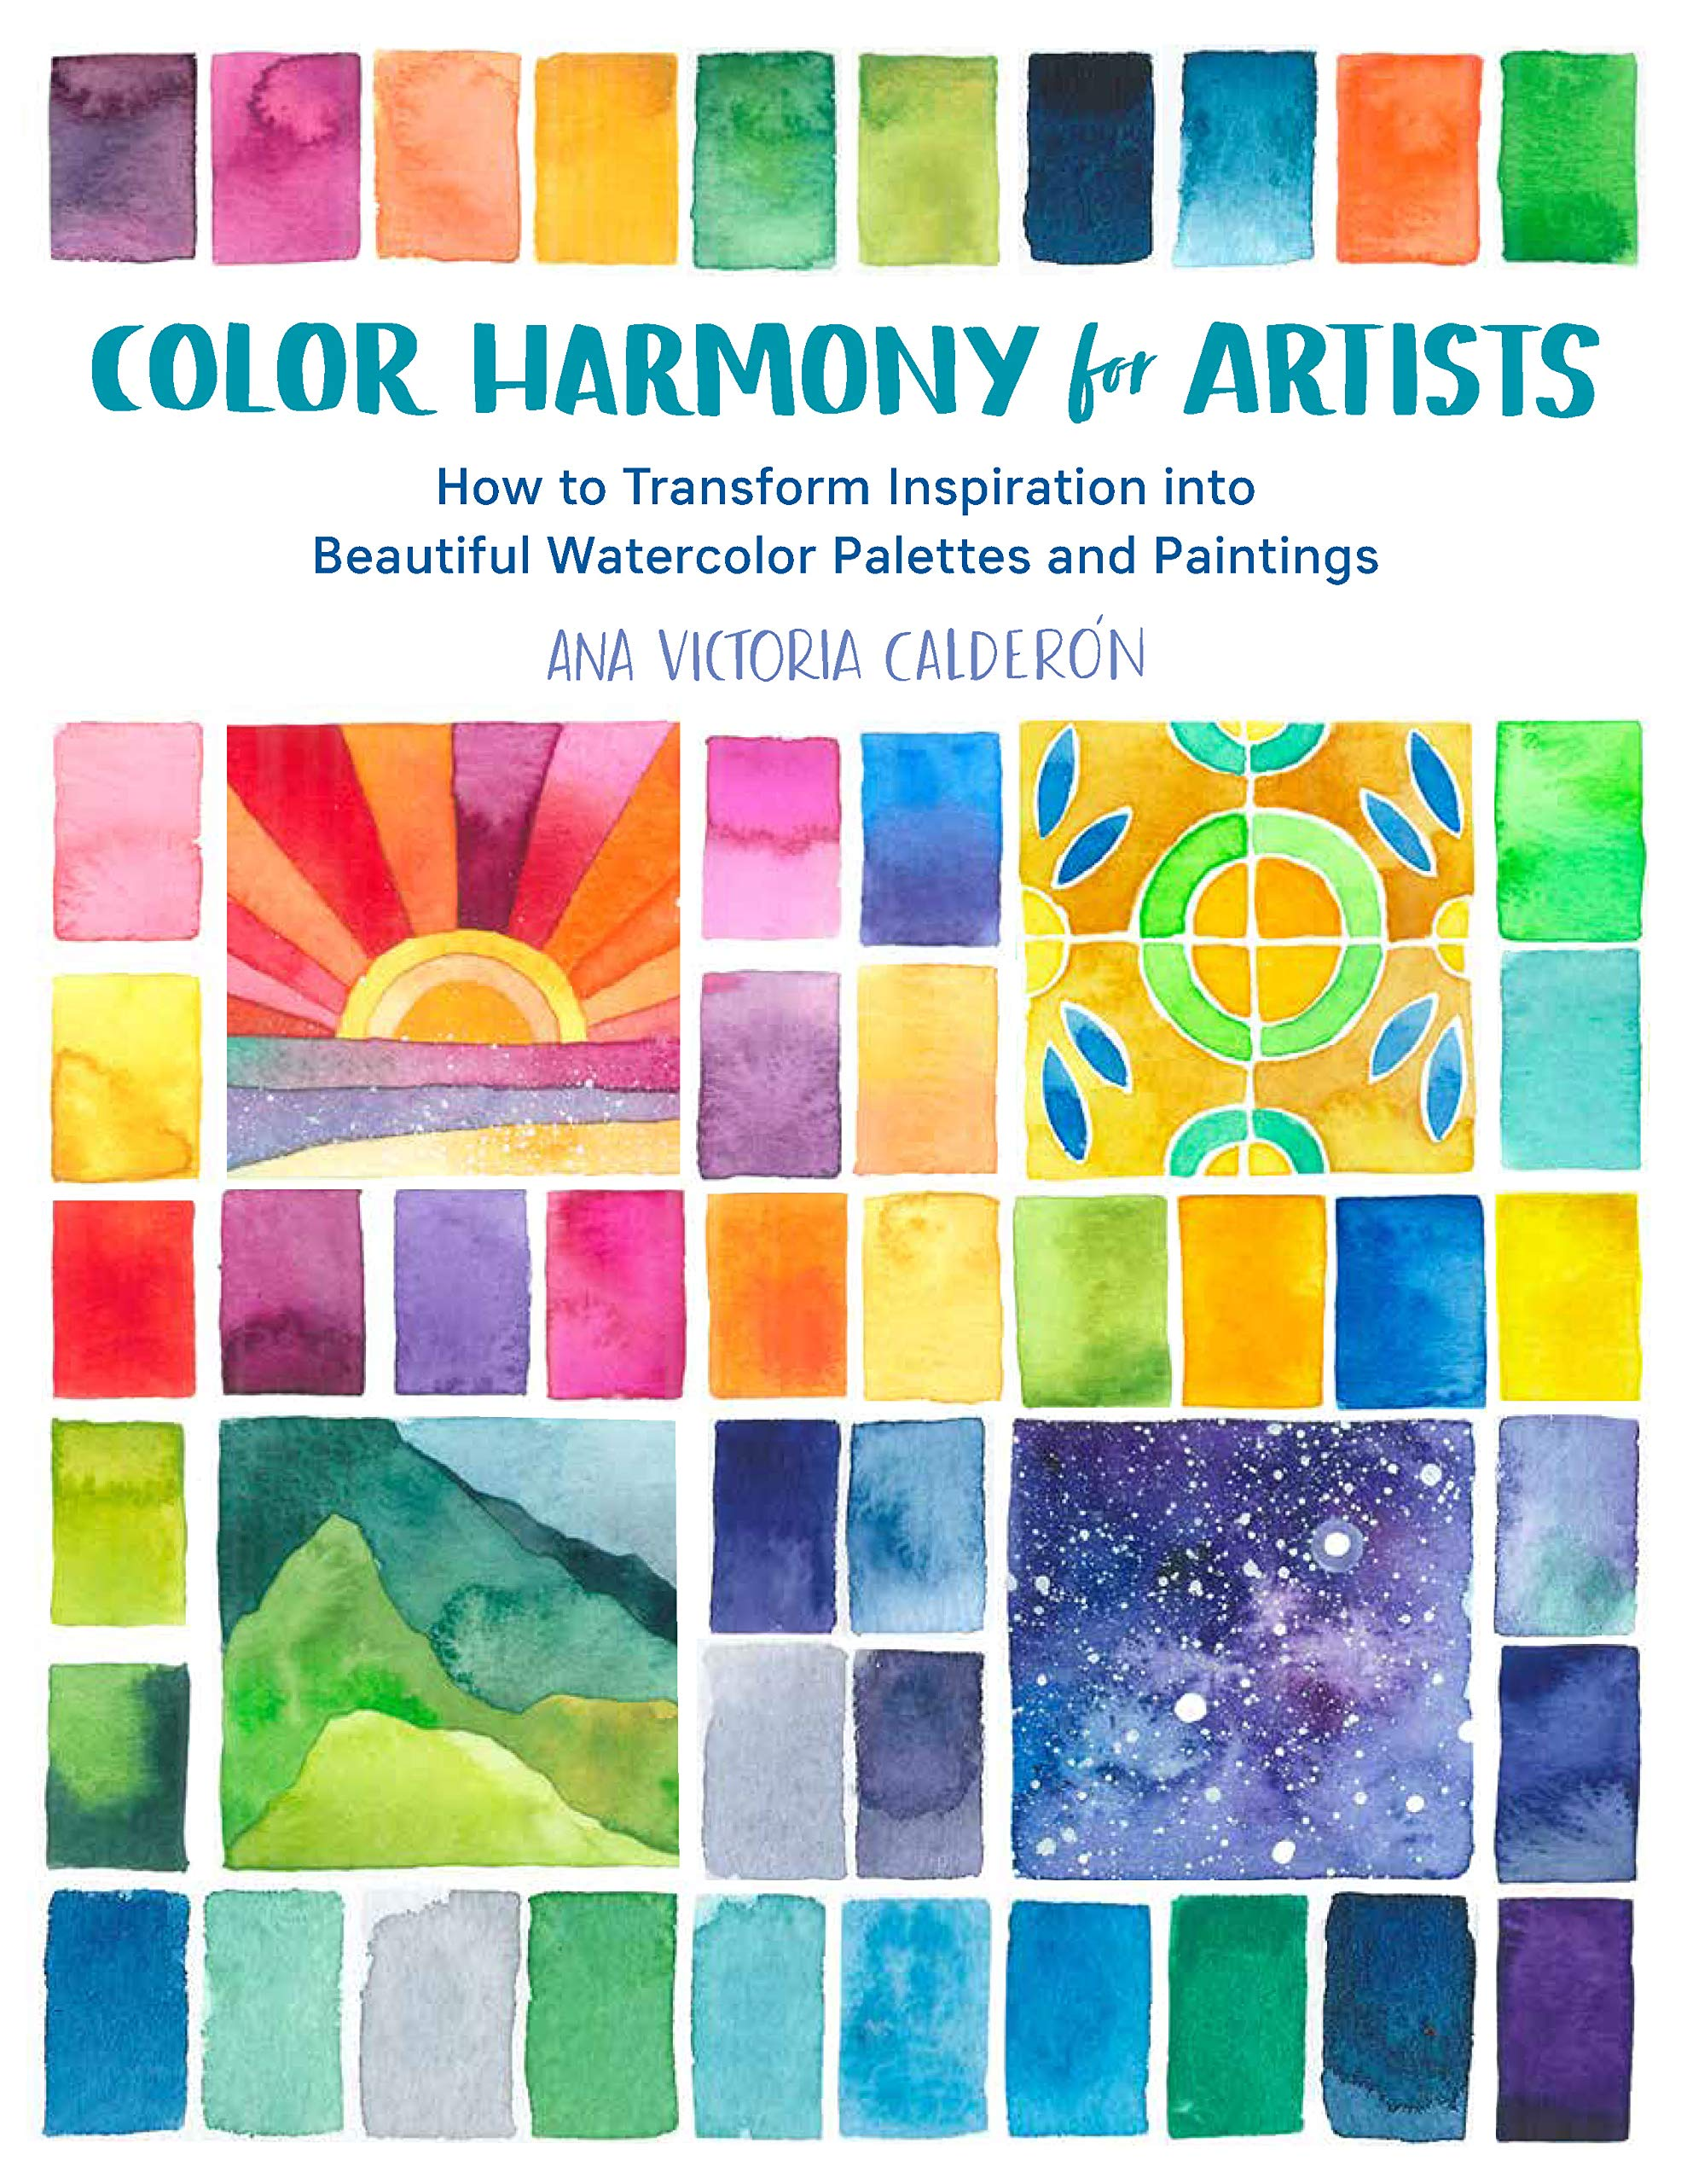 Color Harmony for Artists: How to Transform Inspiration into